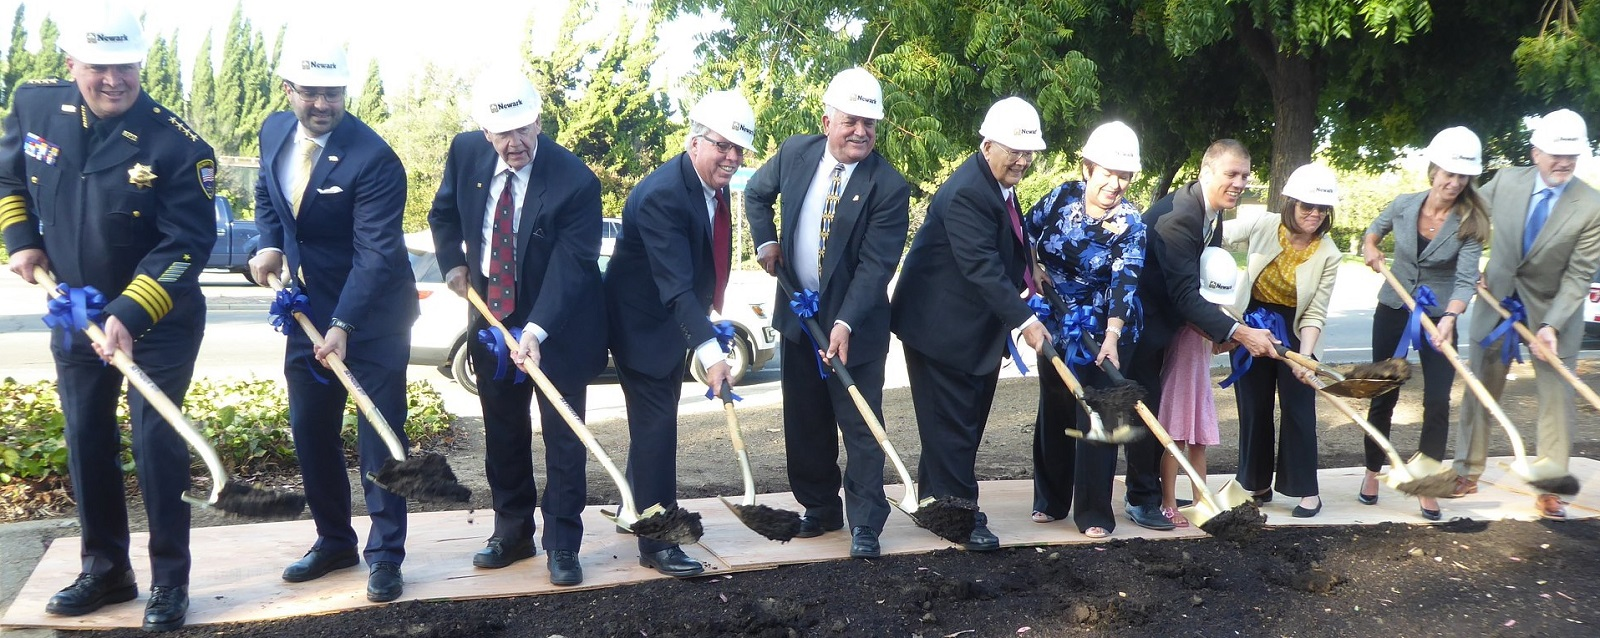 Civic-Center-Groundbreaking-1.jpg